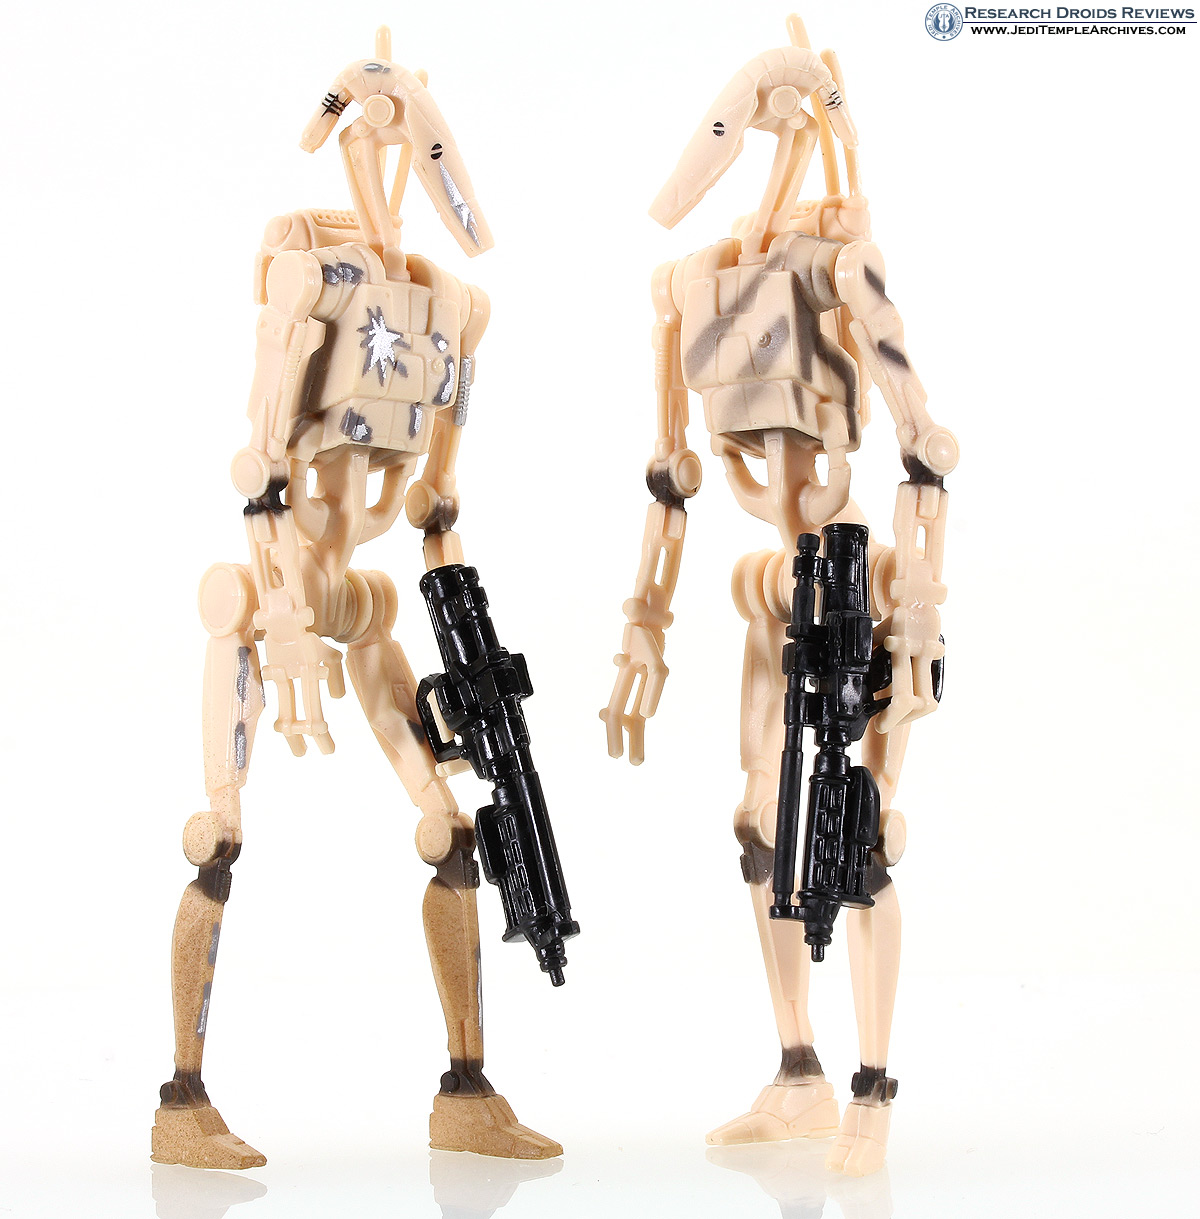 Battle Droids (tan blaster and lightsaber damage) -